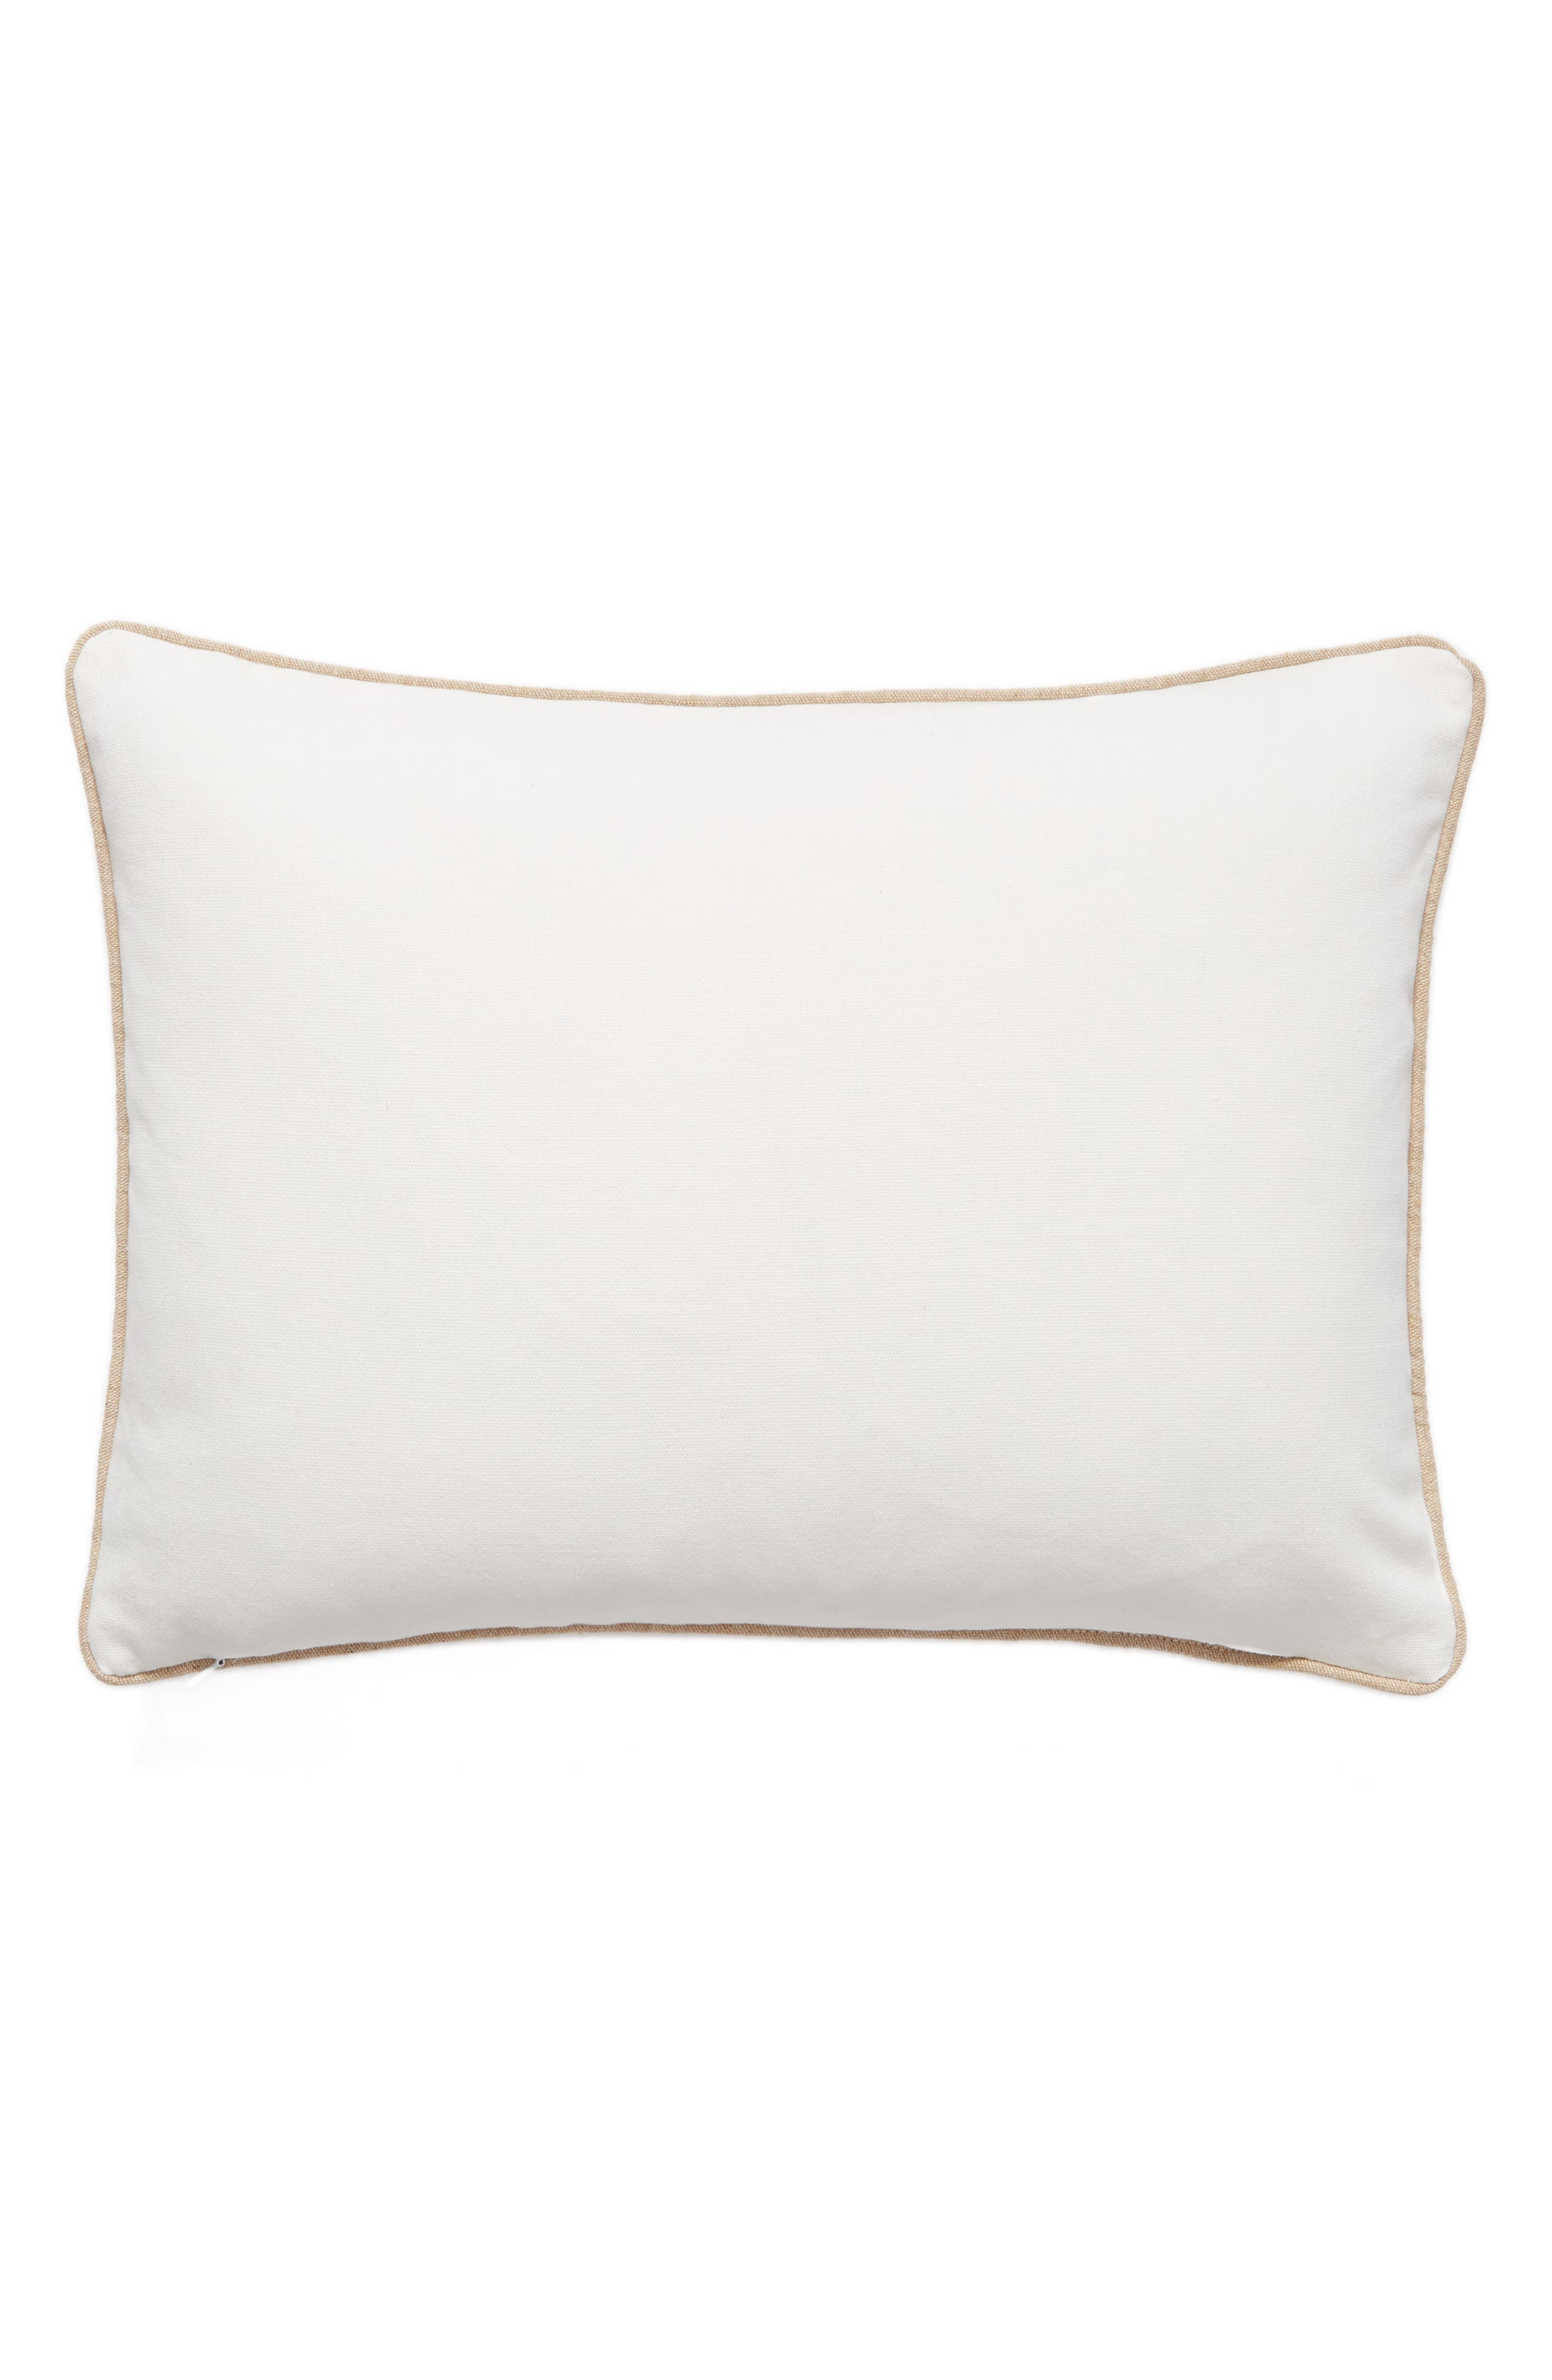 Flawless Accent Pillow,                             Alternate thumbnail 2, color,                             100